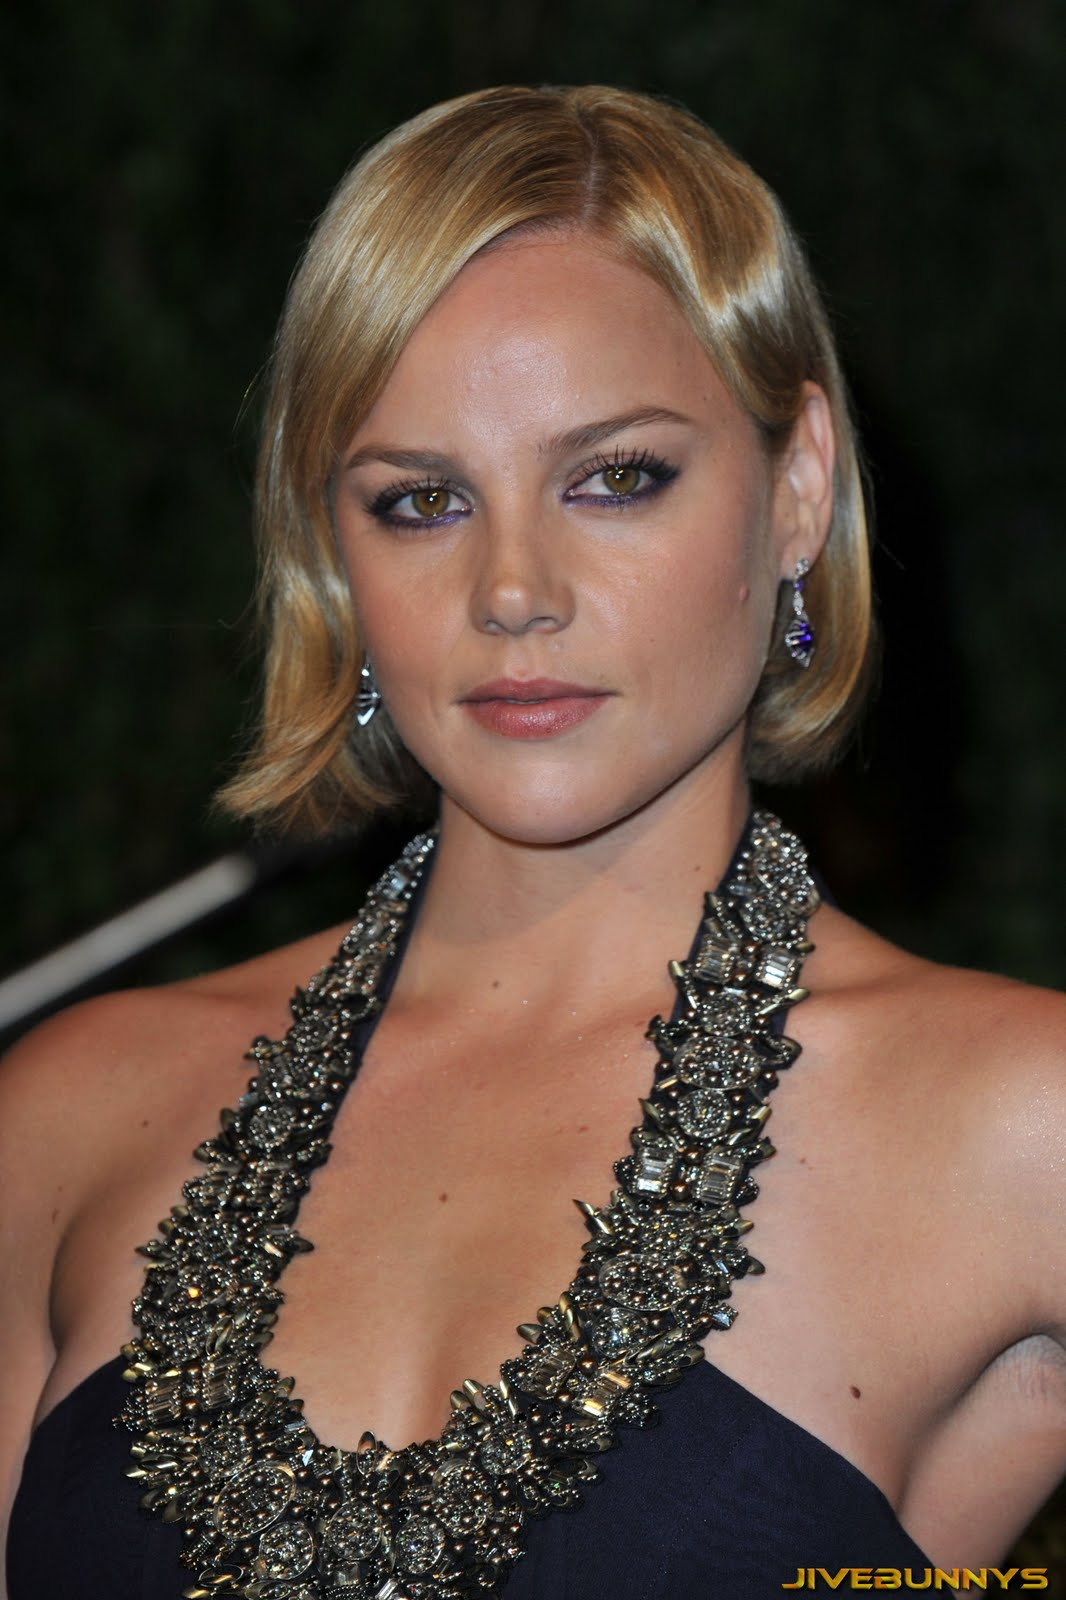 Abbie Cornish nude (84 photo) Hot, YouTube, see through